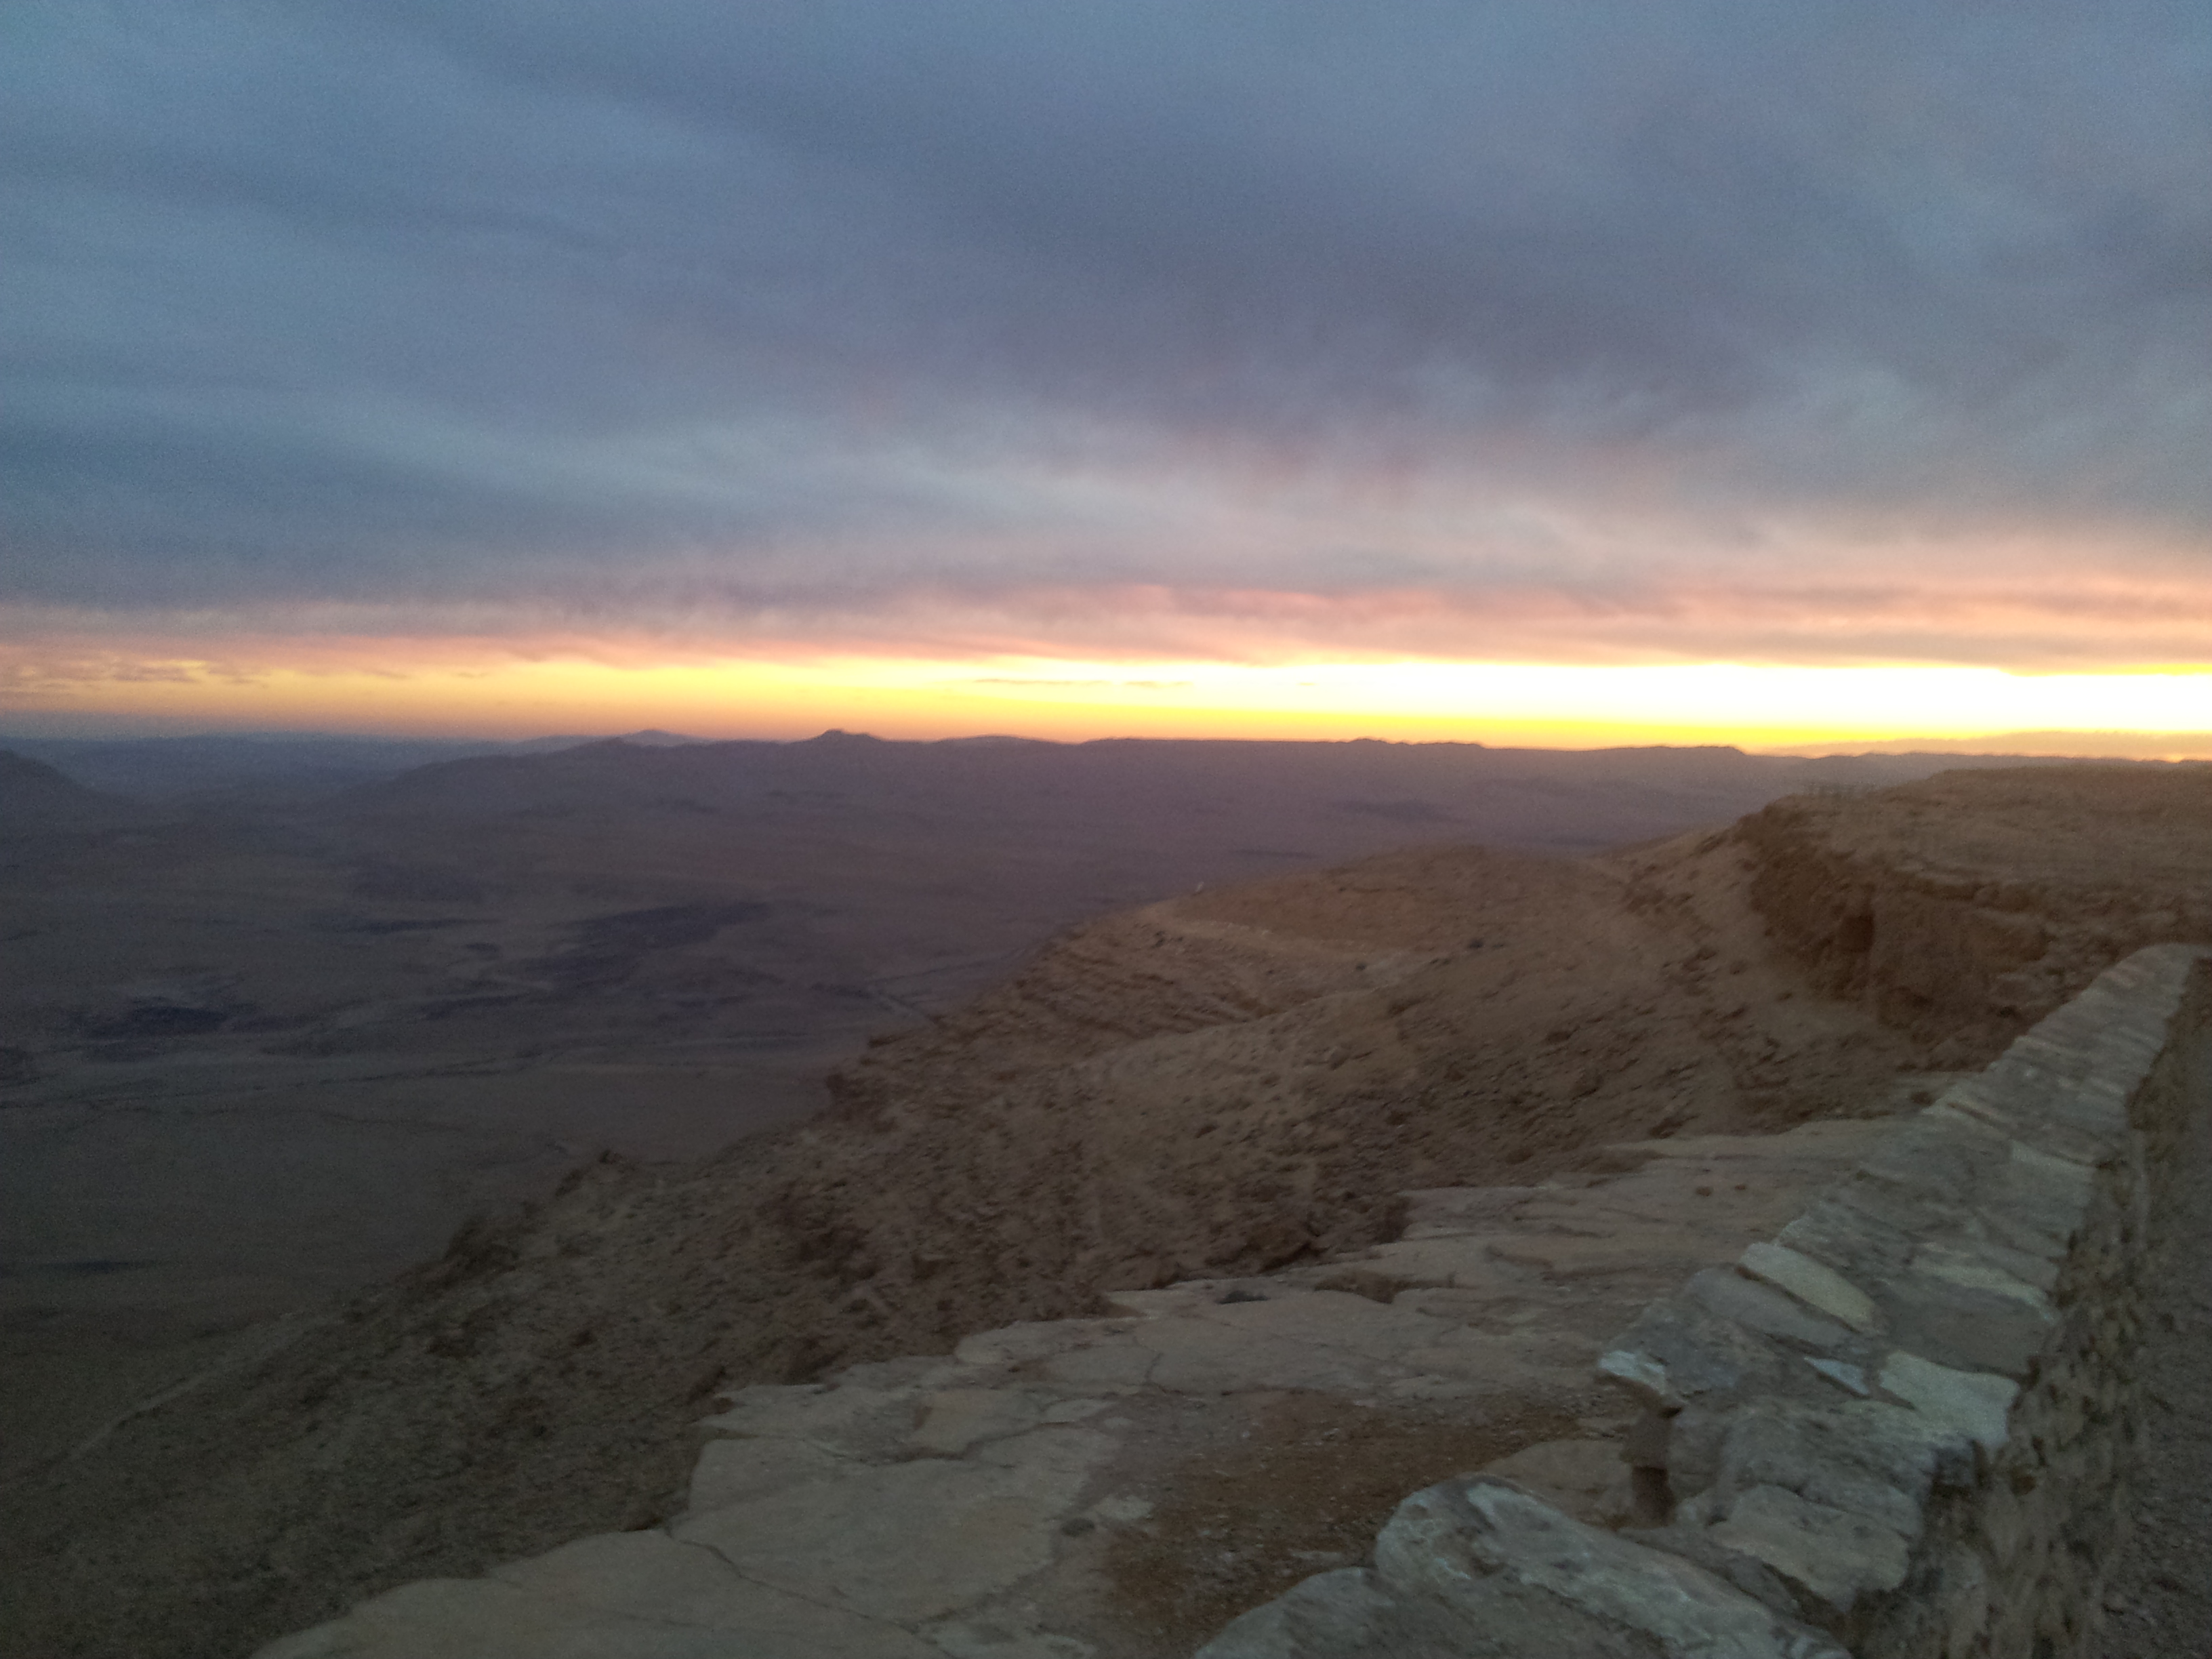 Sunset at Ramon Crater